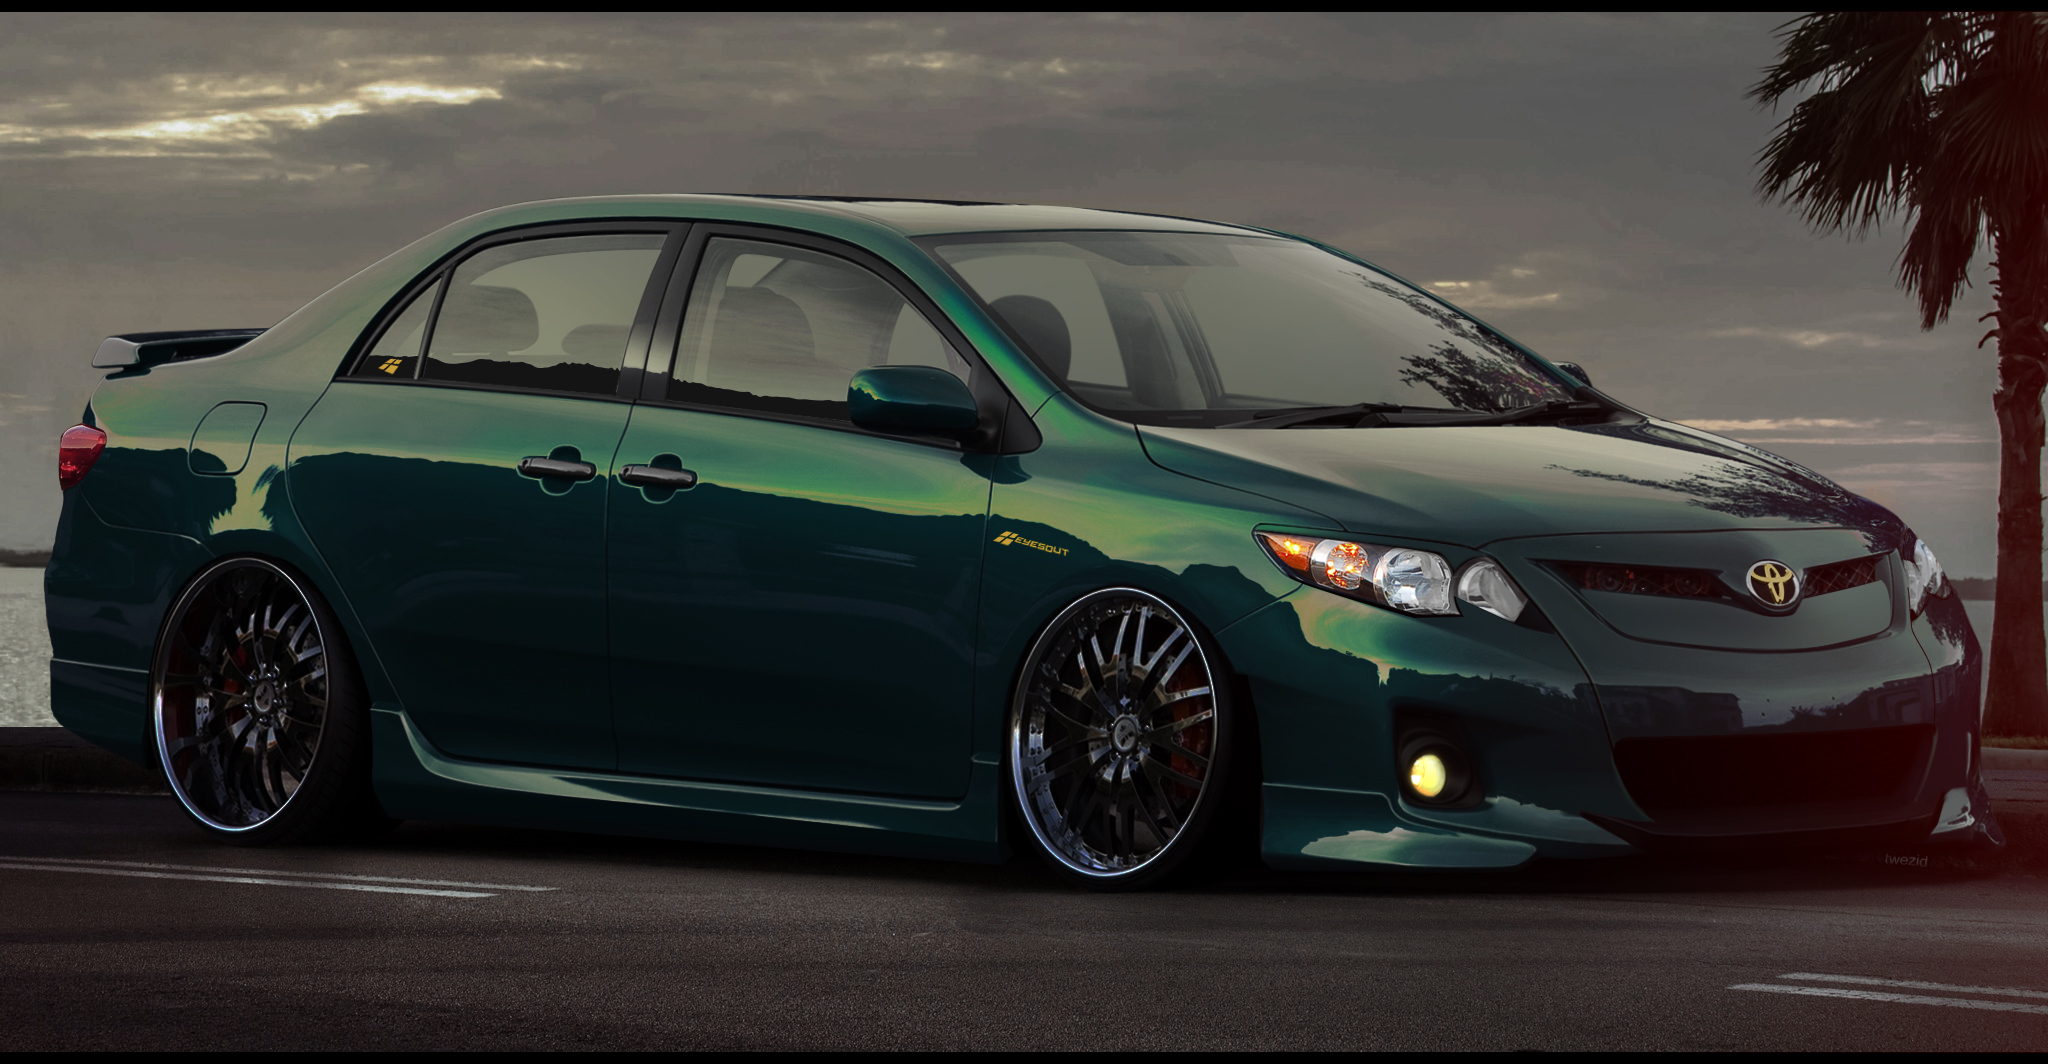 Toyota Corolla By Demodesign On Deviantart